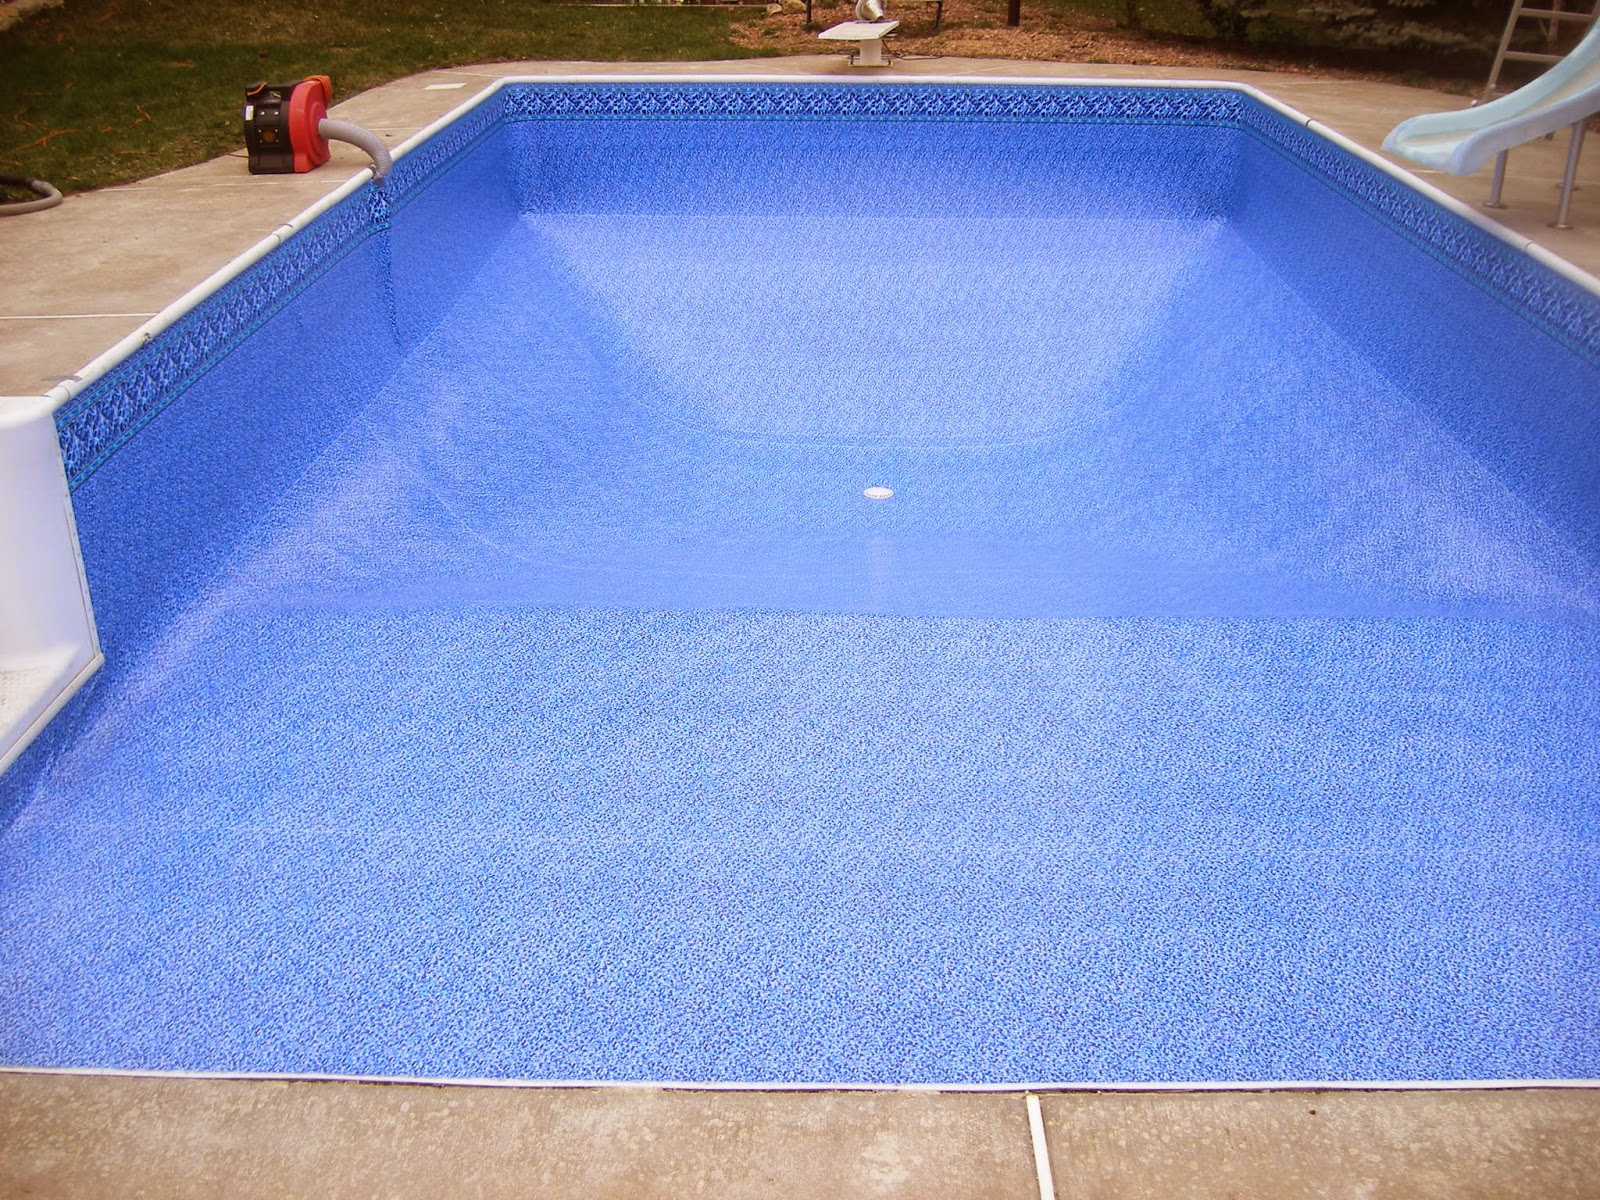 Rich vermiculite minerals and applications for Vermiculite swimming pool base